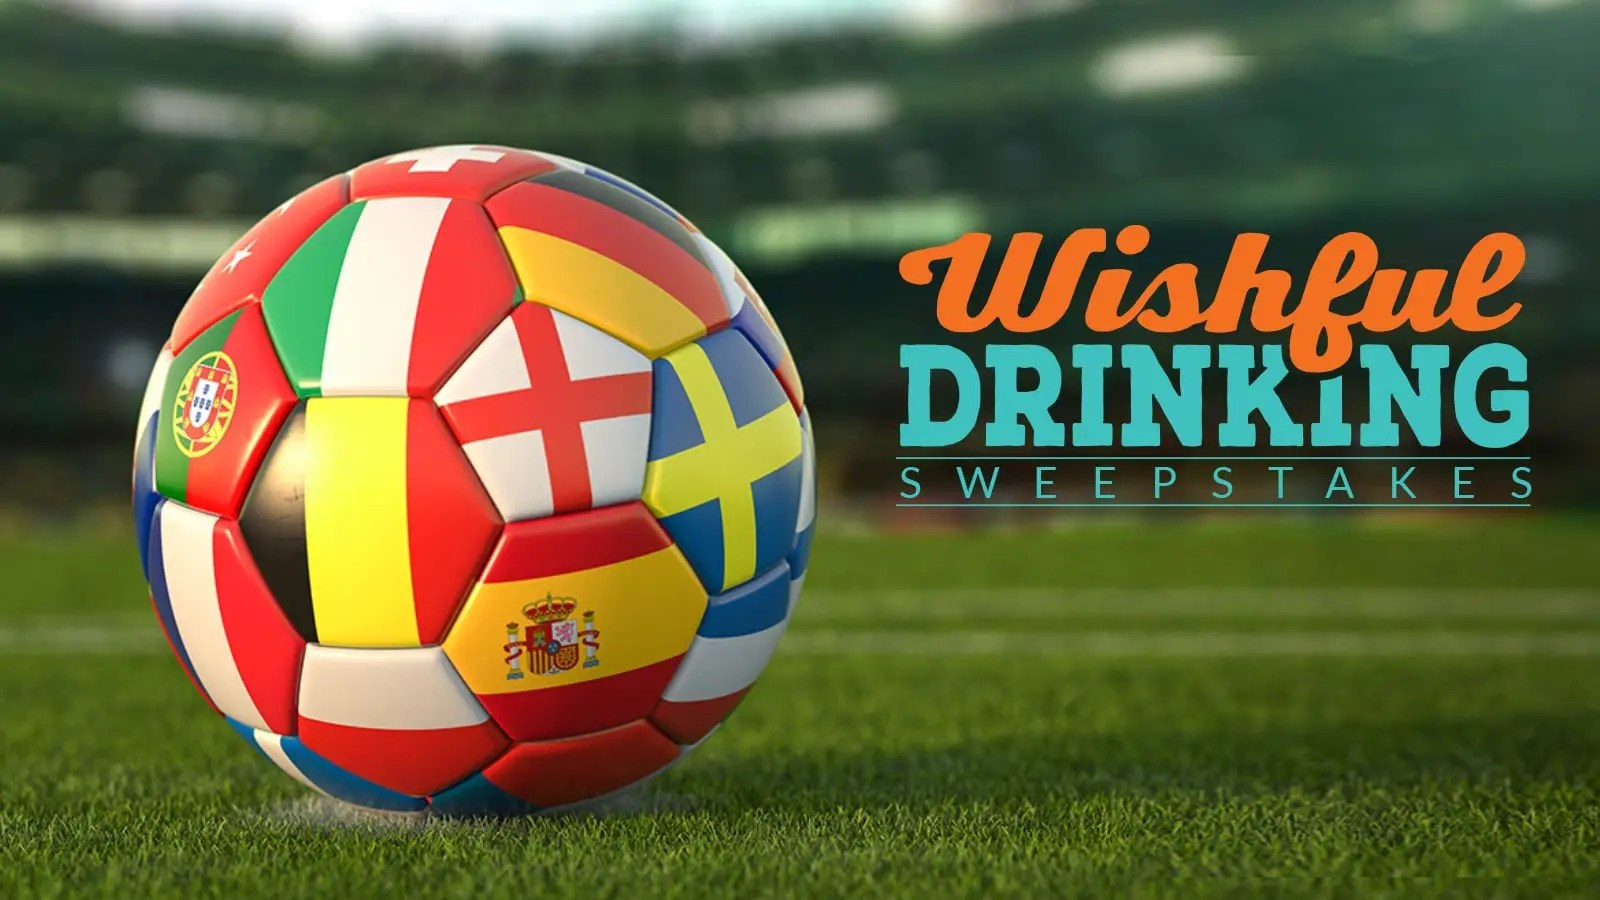 Have you seen the Euro 2020 Wishful Sweepstakes?